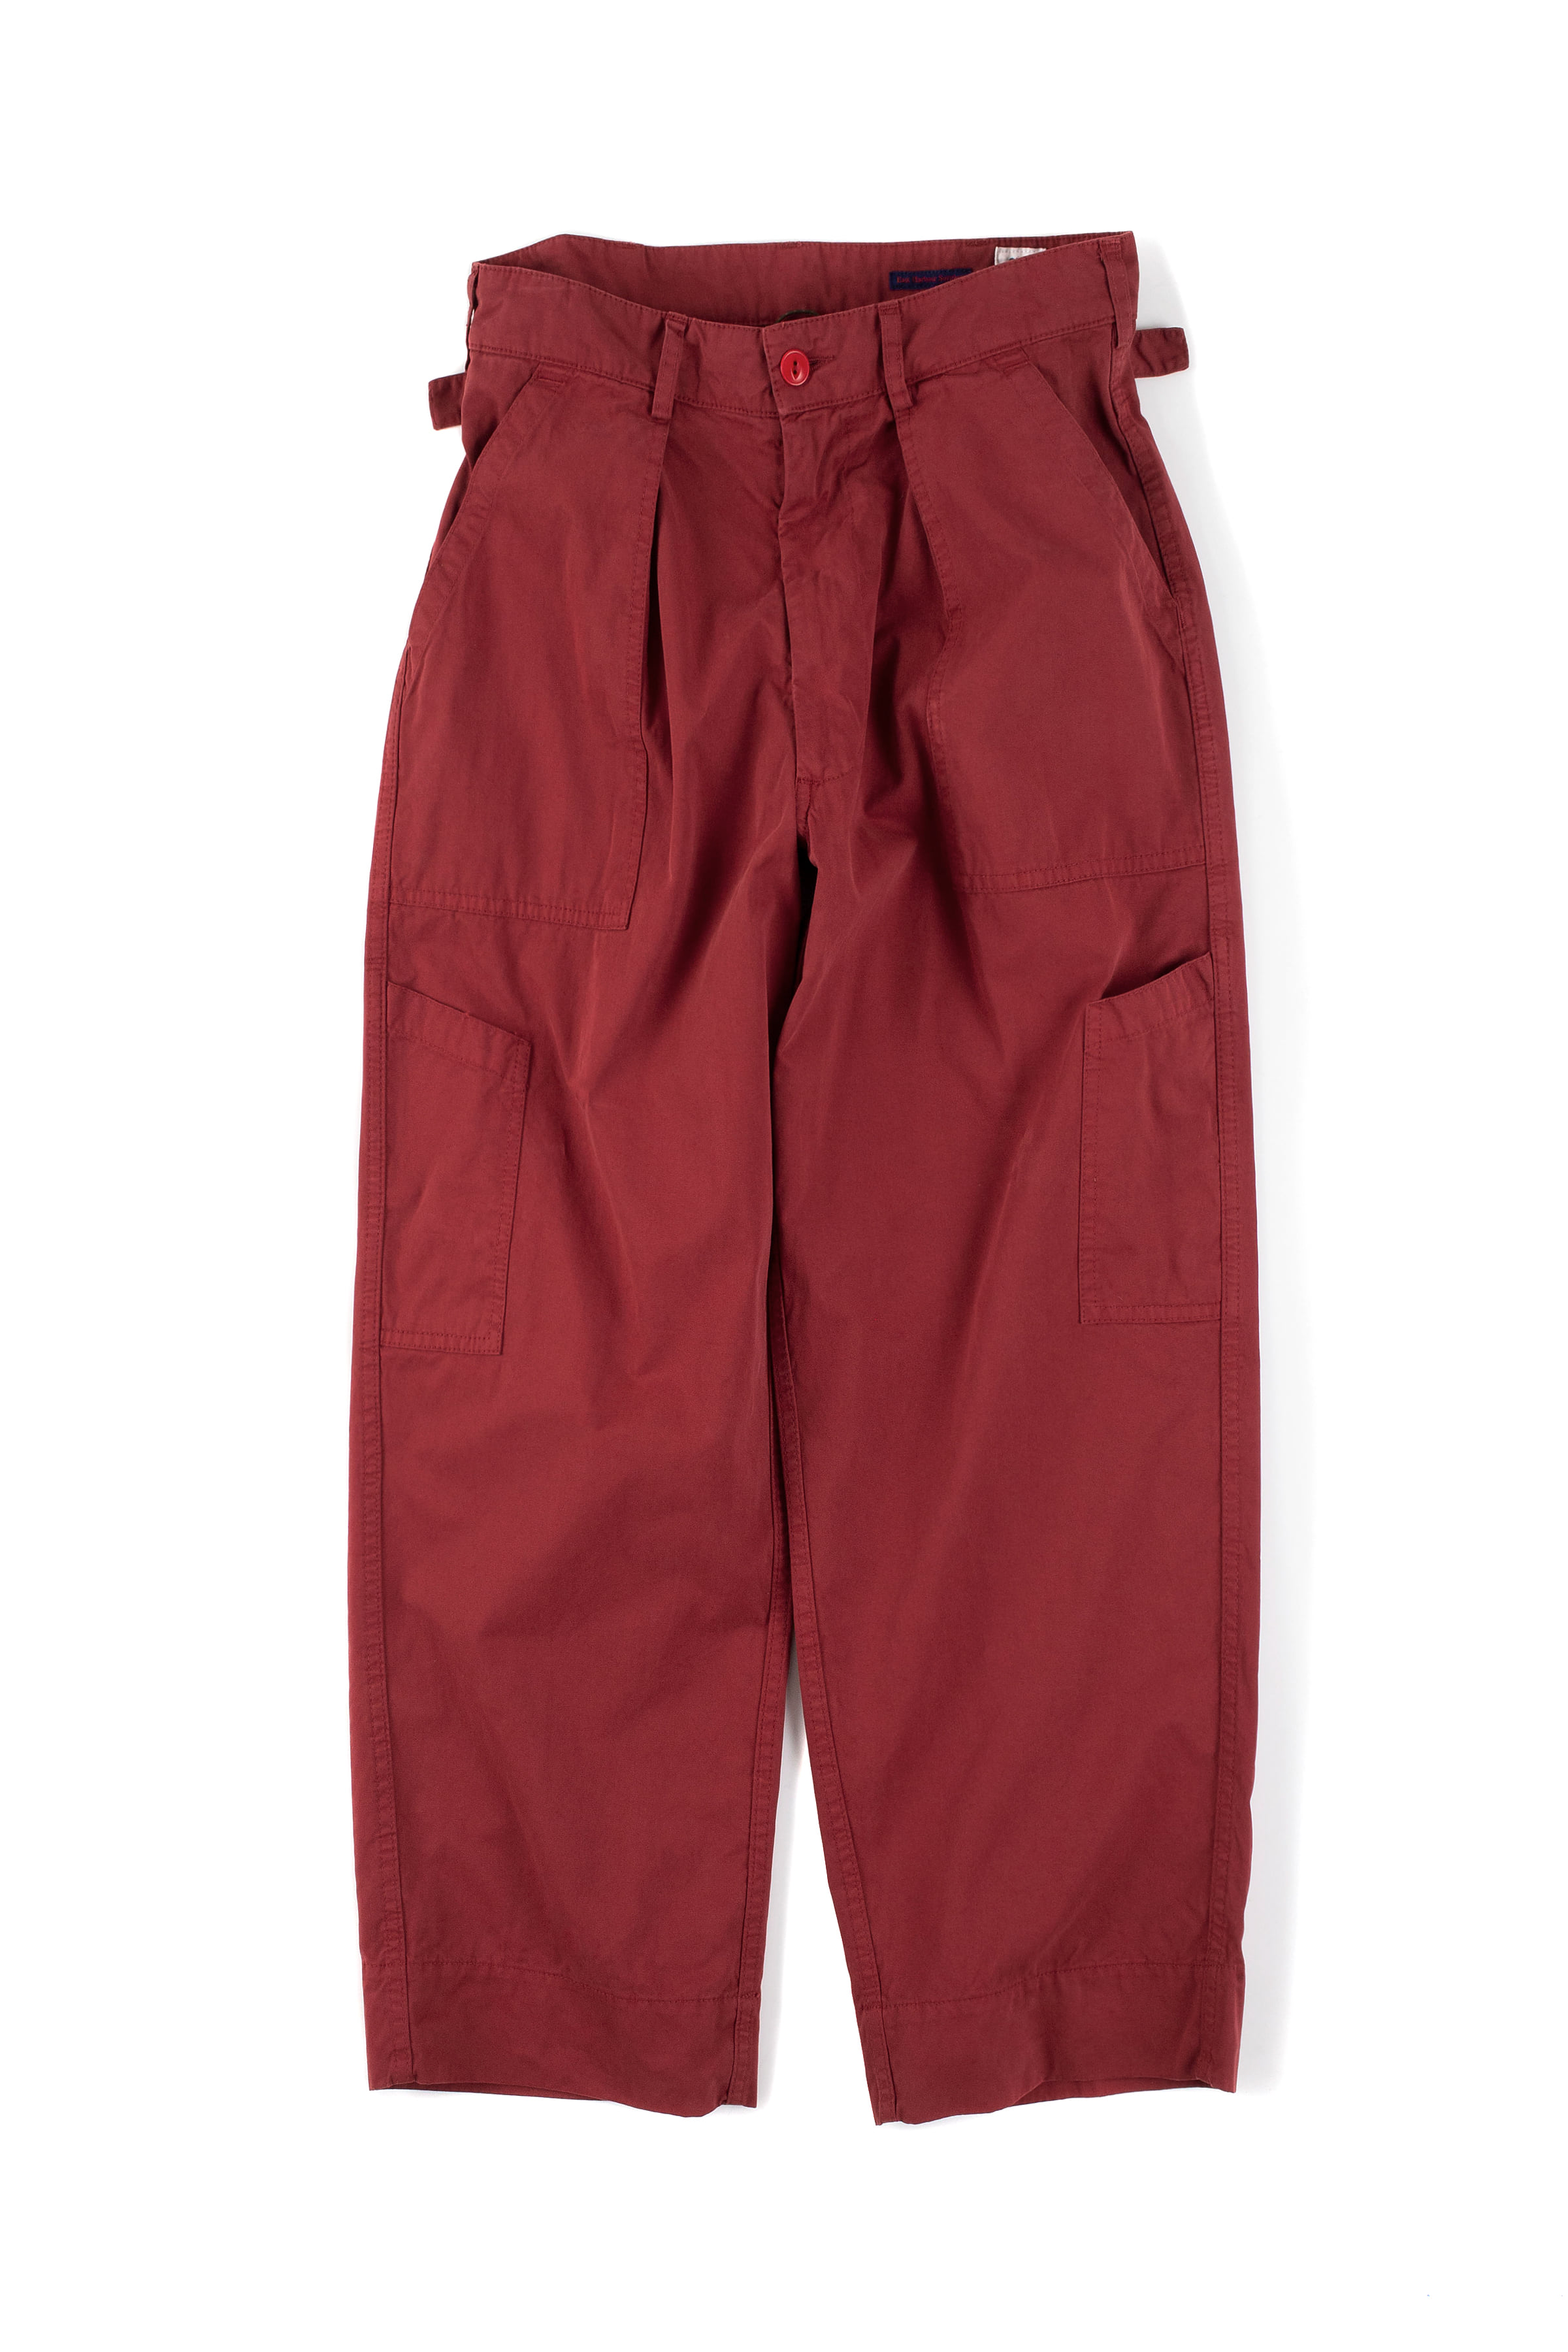 East Harbour Surplus : Fatigue Pants (Red)